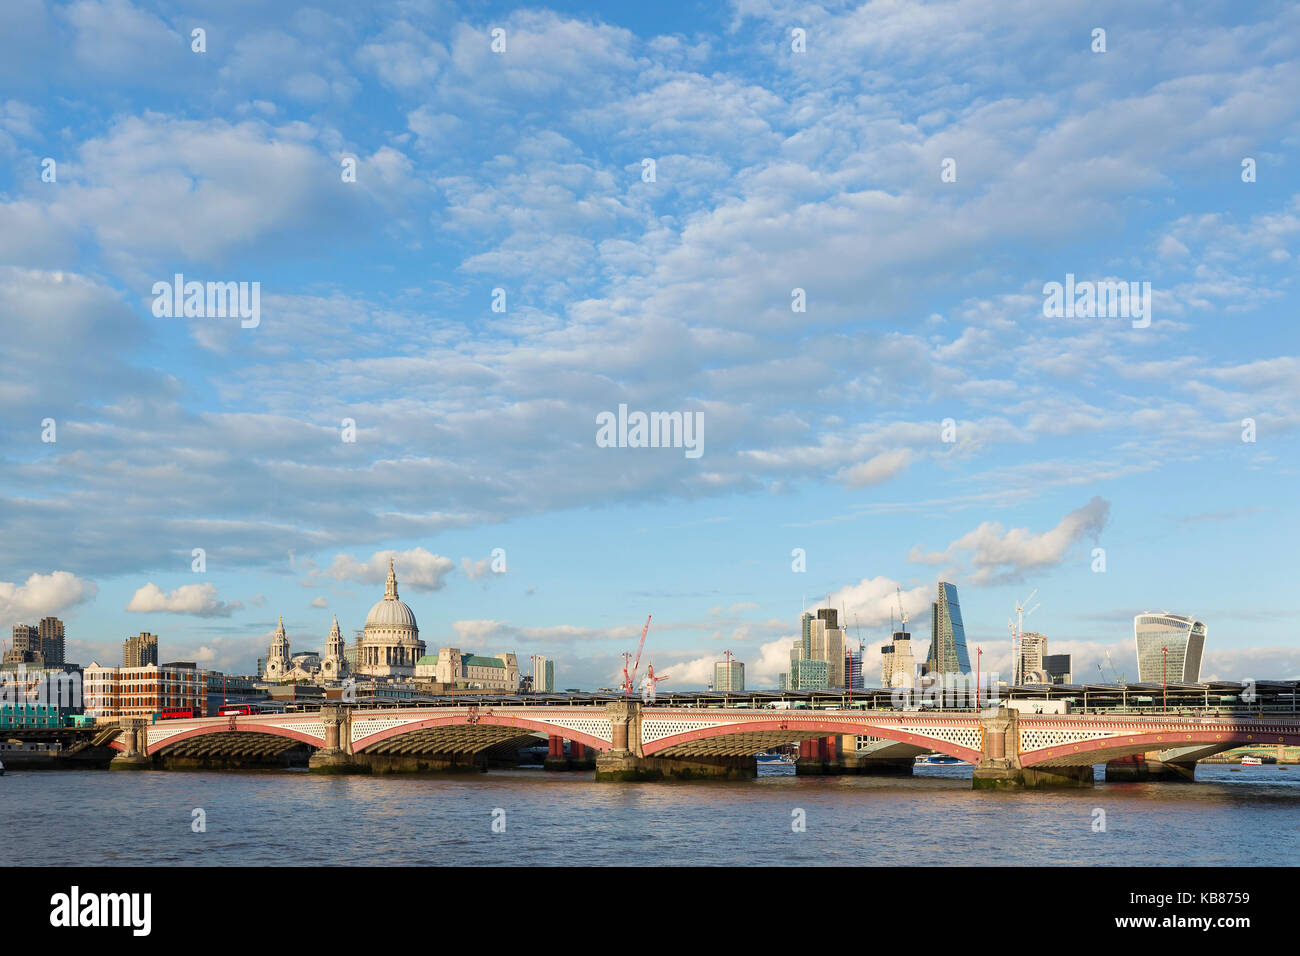 LONDON - SEPTEMBER 2017; The Thames river with the London skyline. - Stock Image